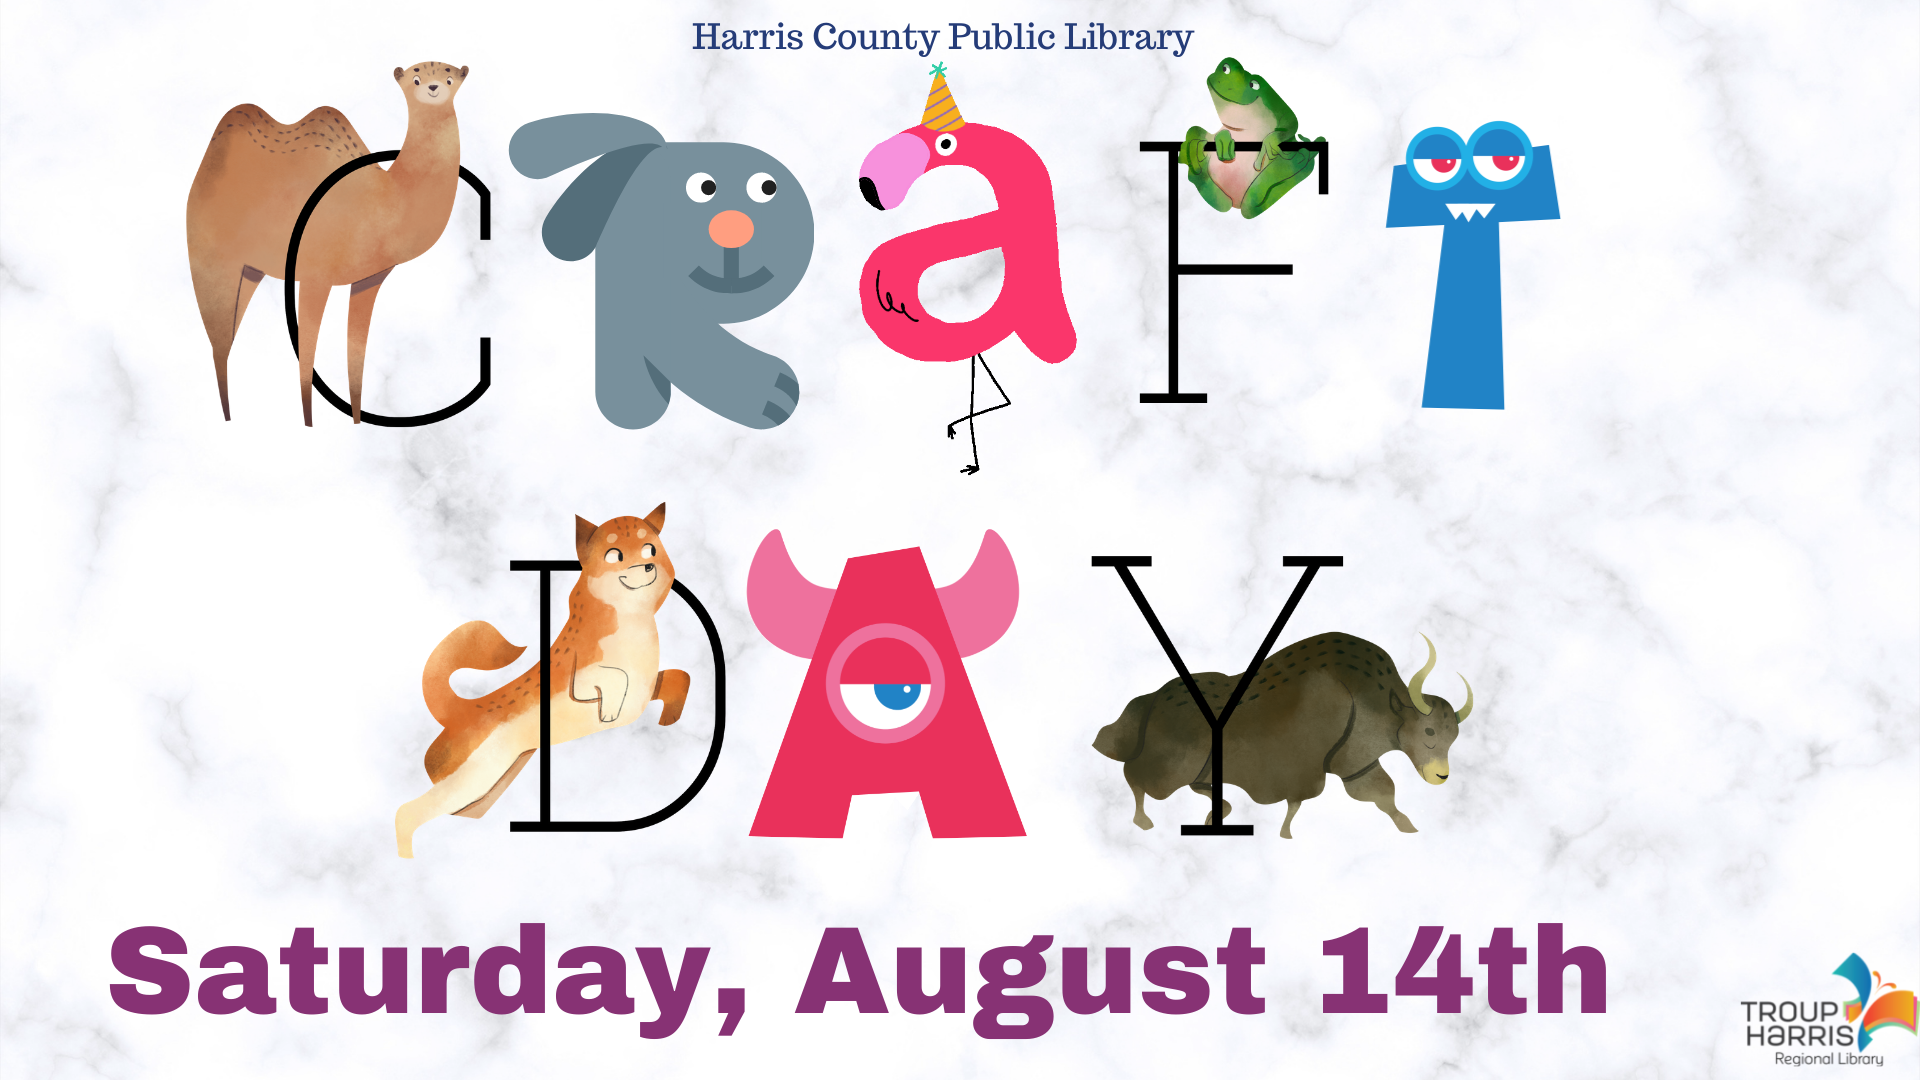 Craft Day at the Harris County Public Library all day on Saturday, August 14